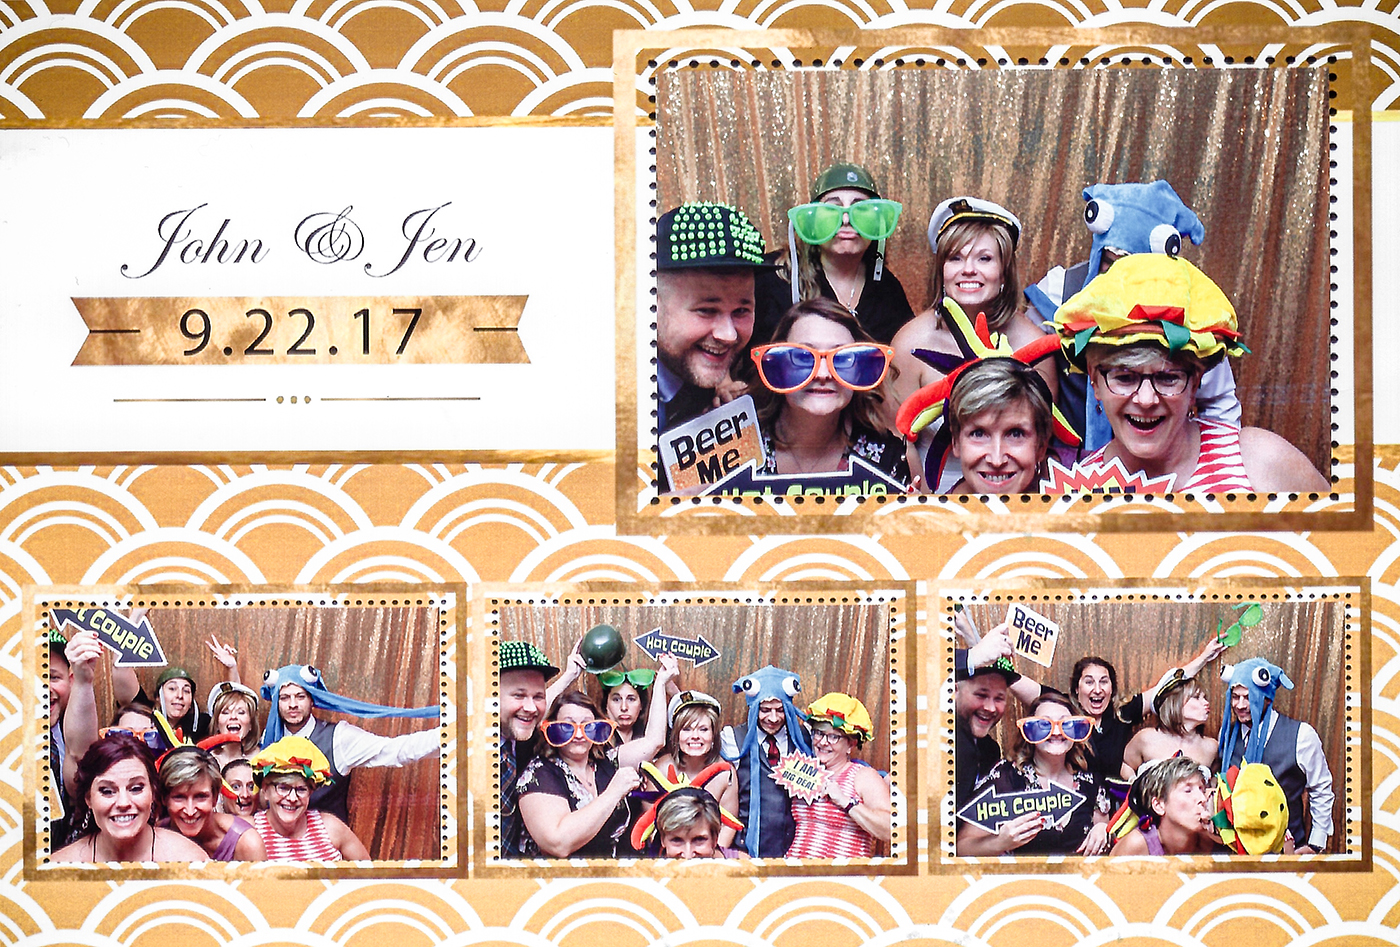 All Occasions Photography Albany NY - Wedding Photography Funny Photographers Silly Props & Hats